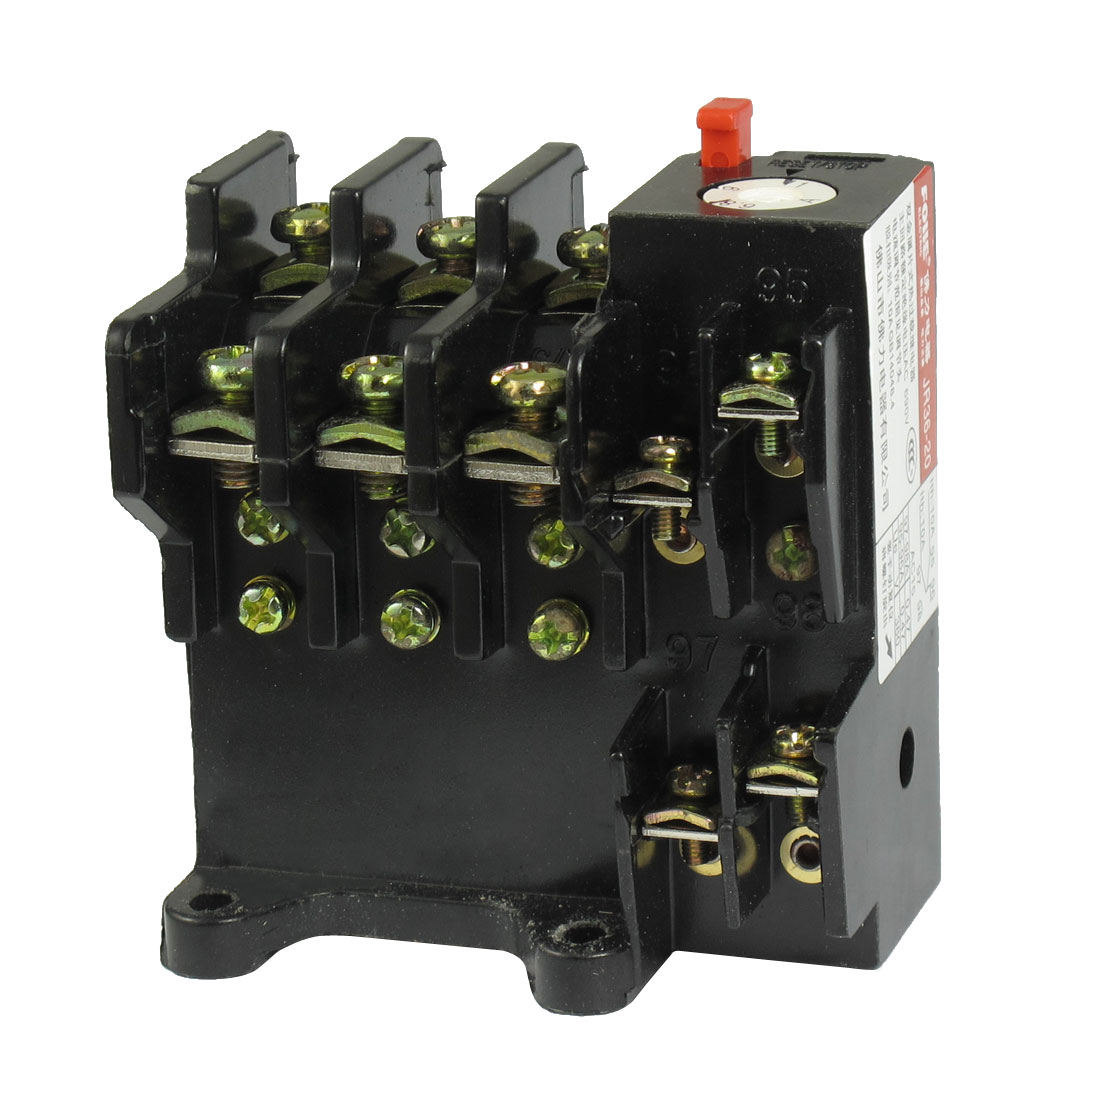 JR36-20 6.8-11A Adjustable 3-Pole 1NO 1NC Thermal Overload Relay